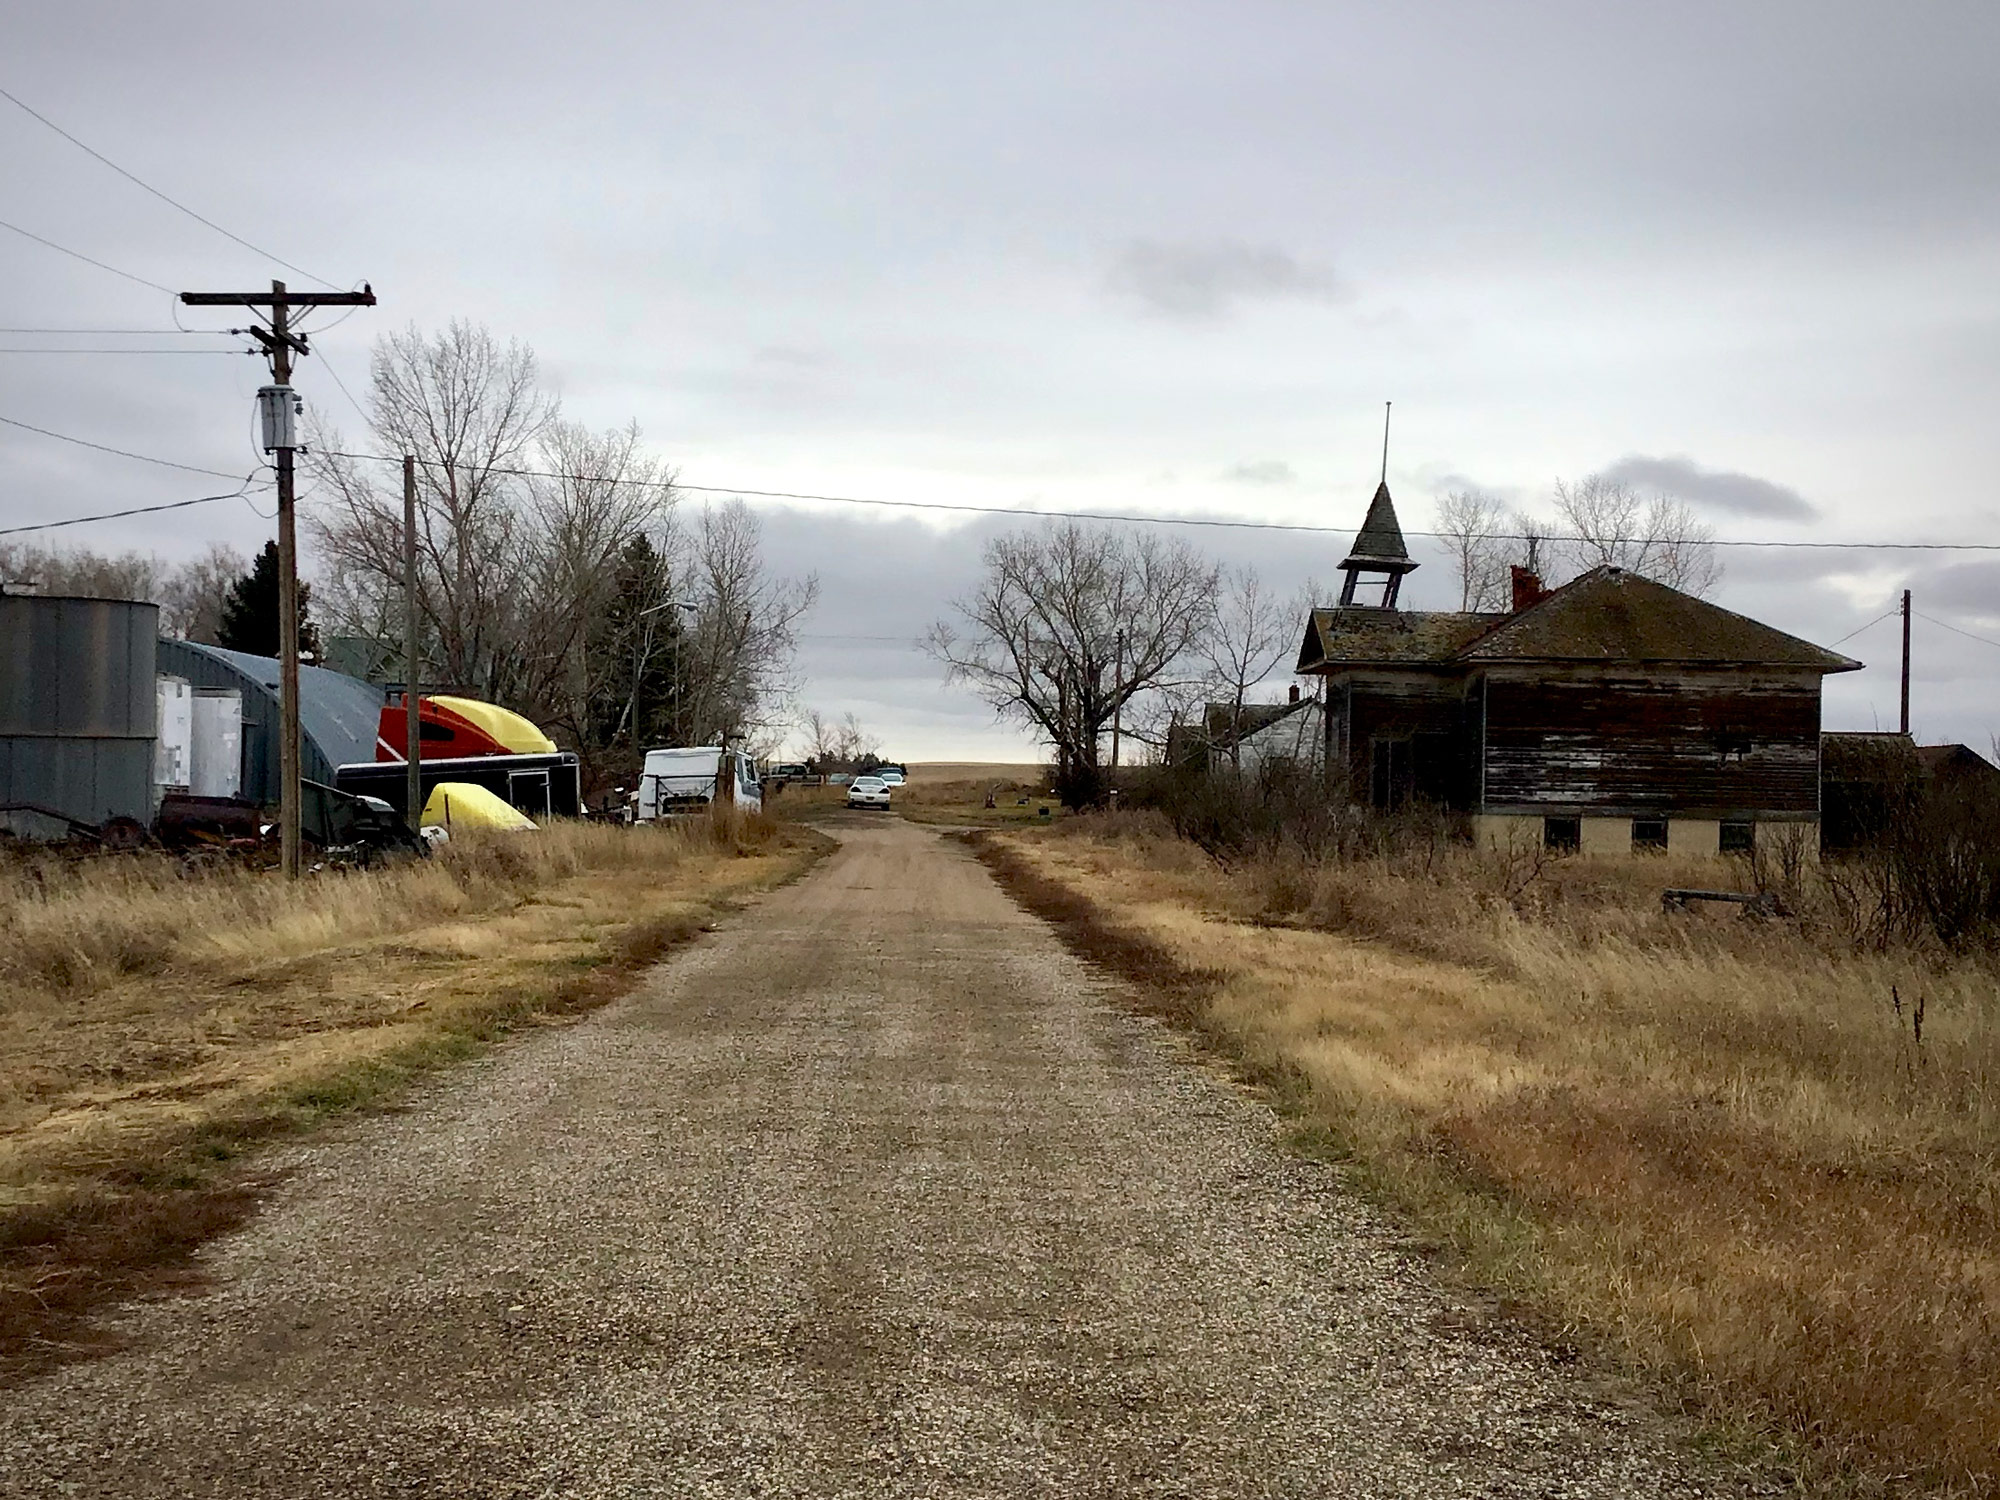 The near-empty town of Corinth, ND demonstrates the uneven distribution of benefits from oil and gas development